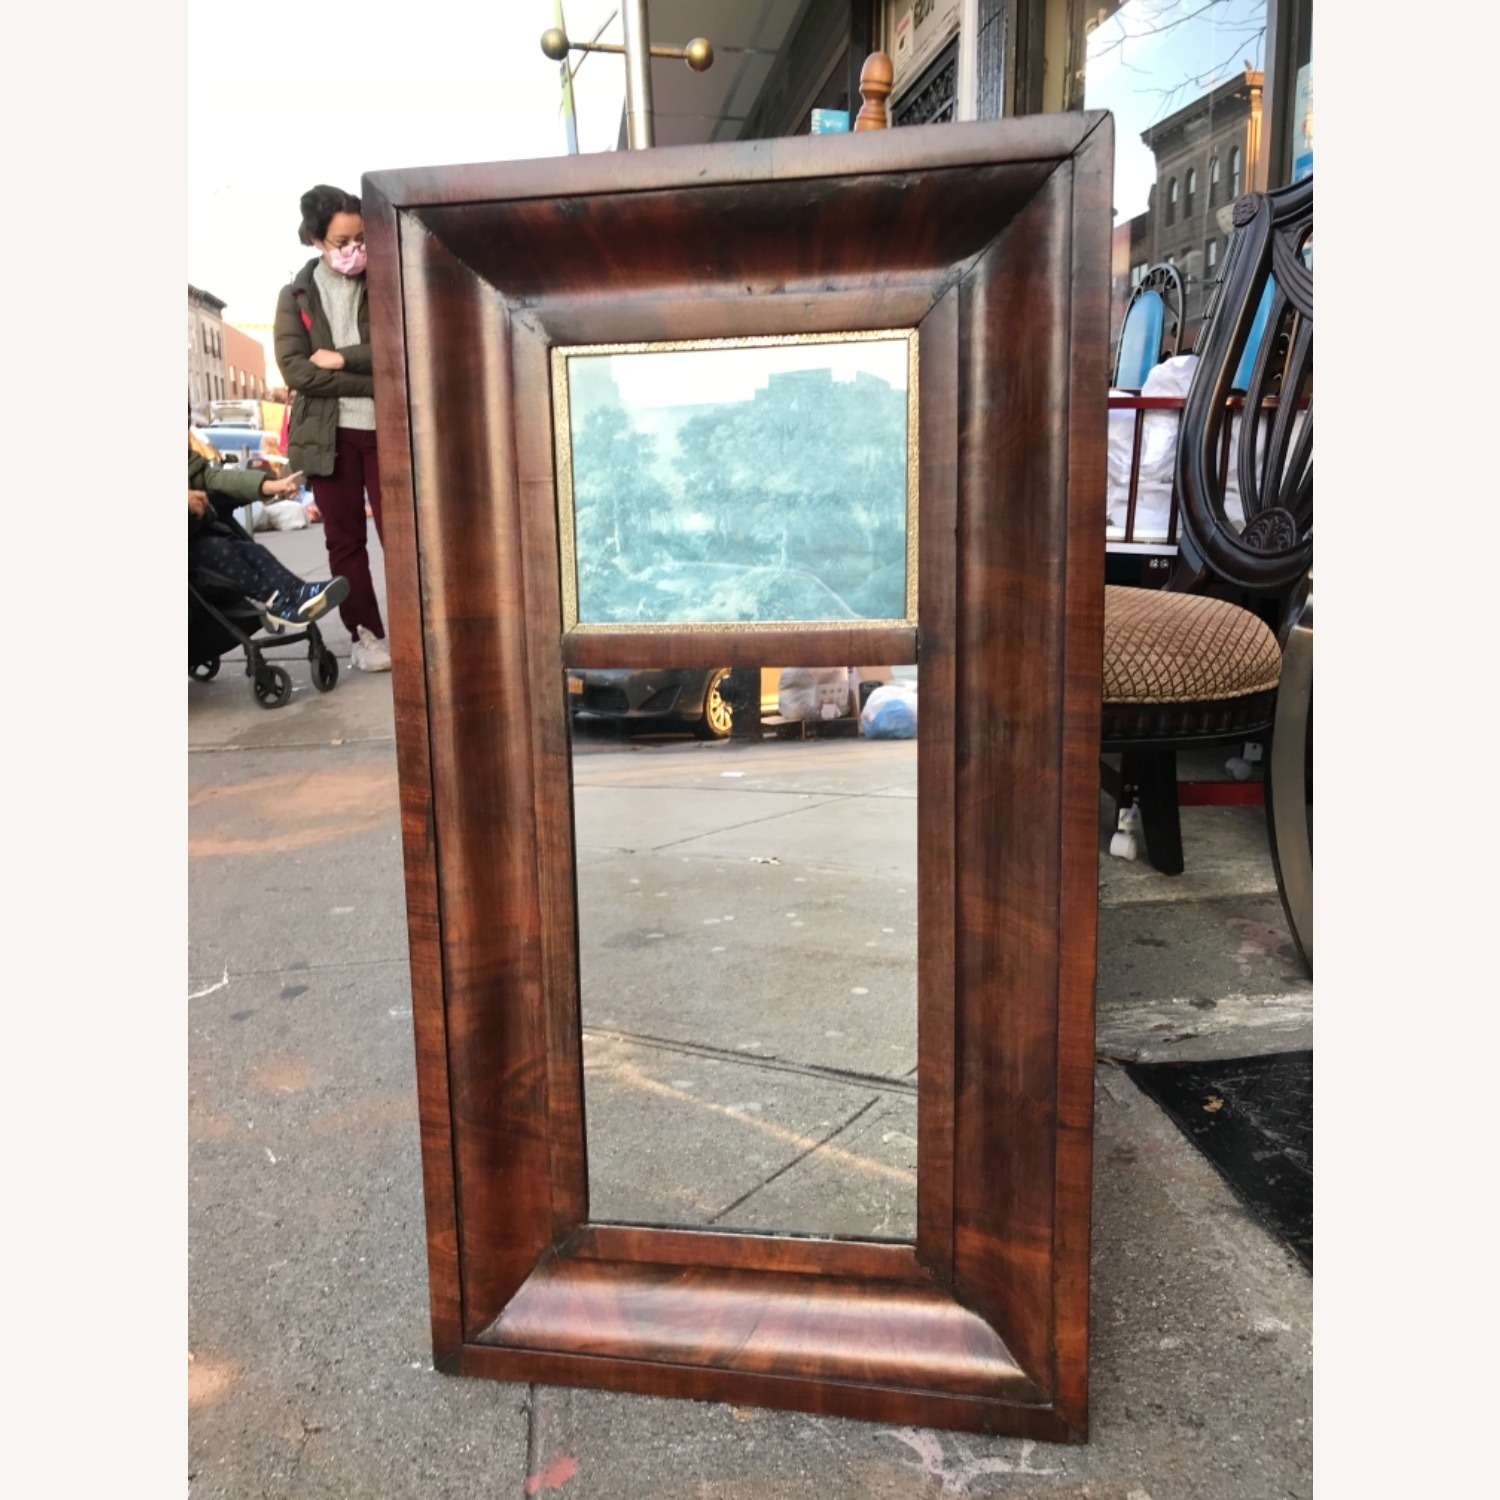 Antique 1900s Mahogany Framed Mirror w/ Picture - image-4